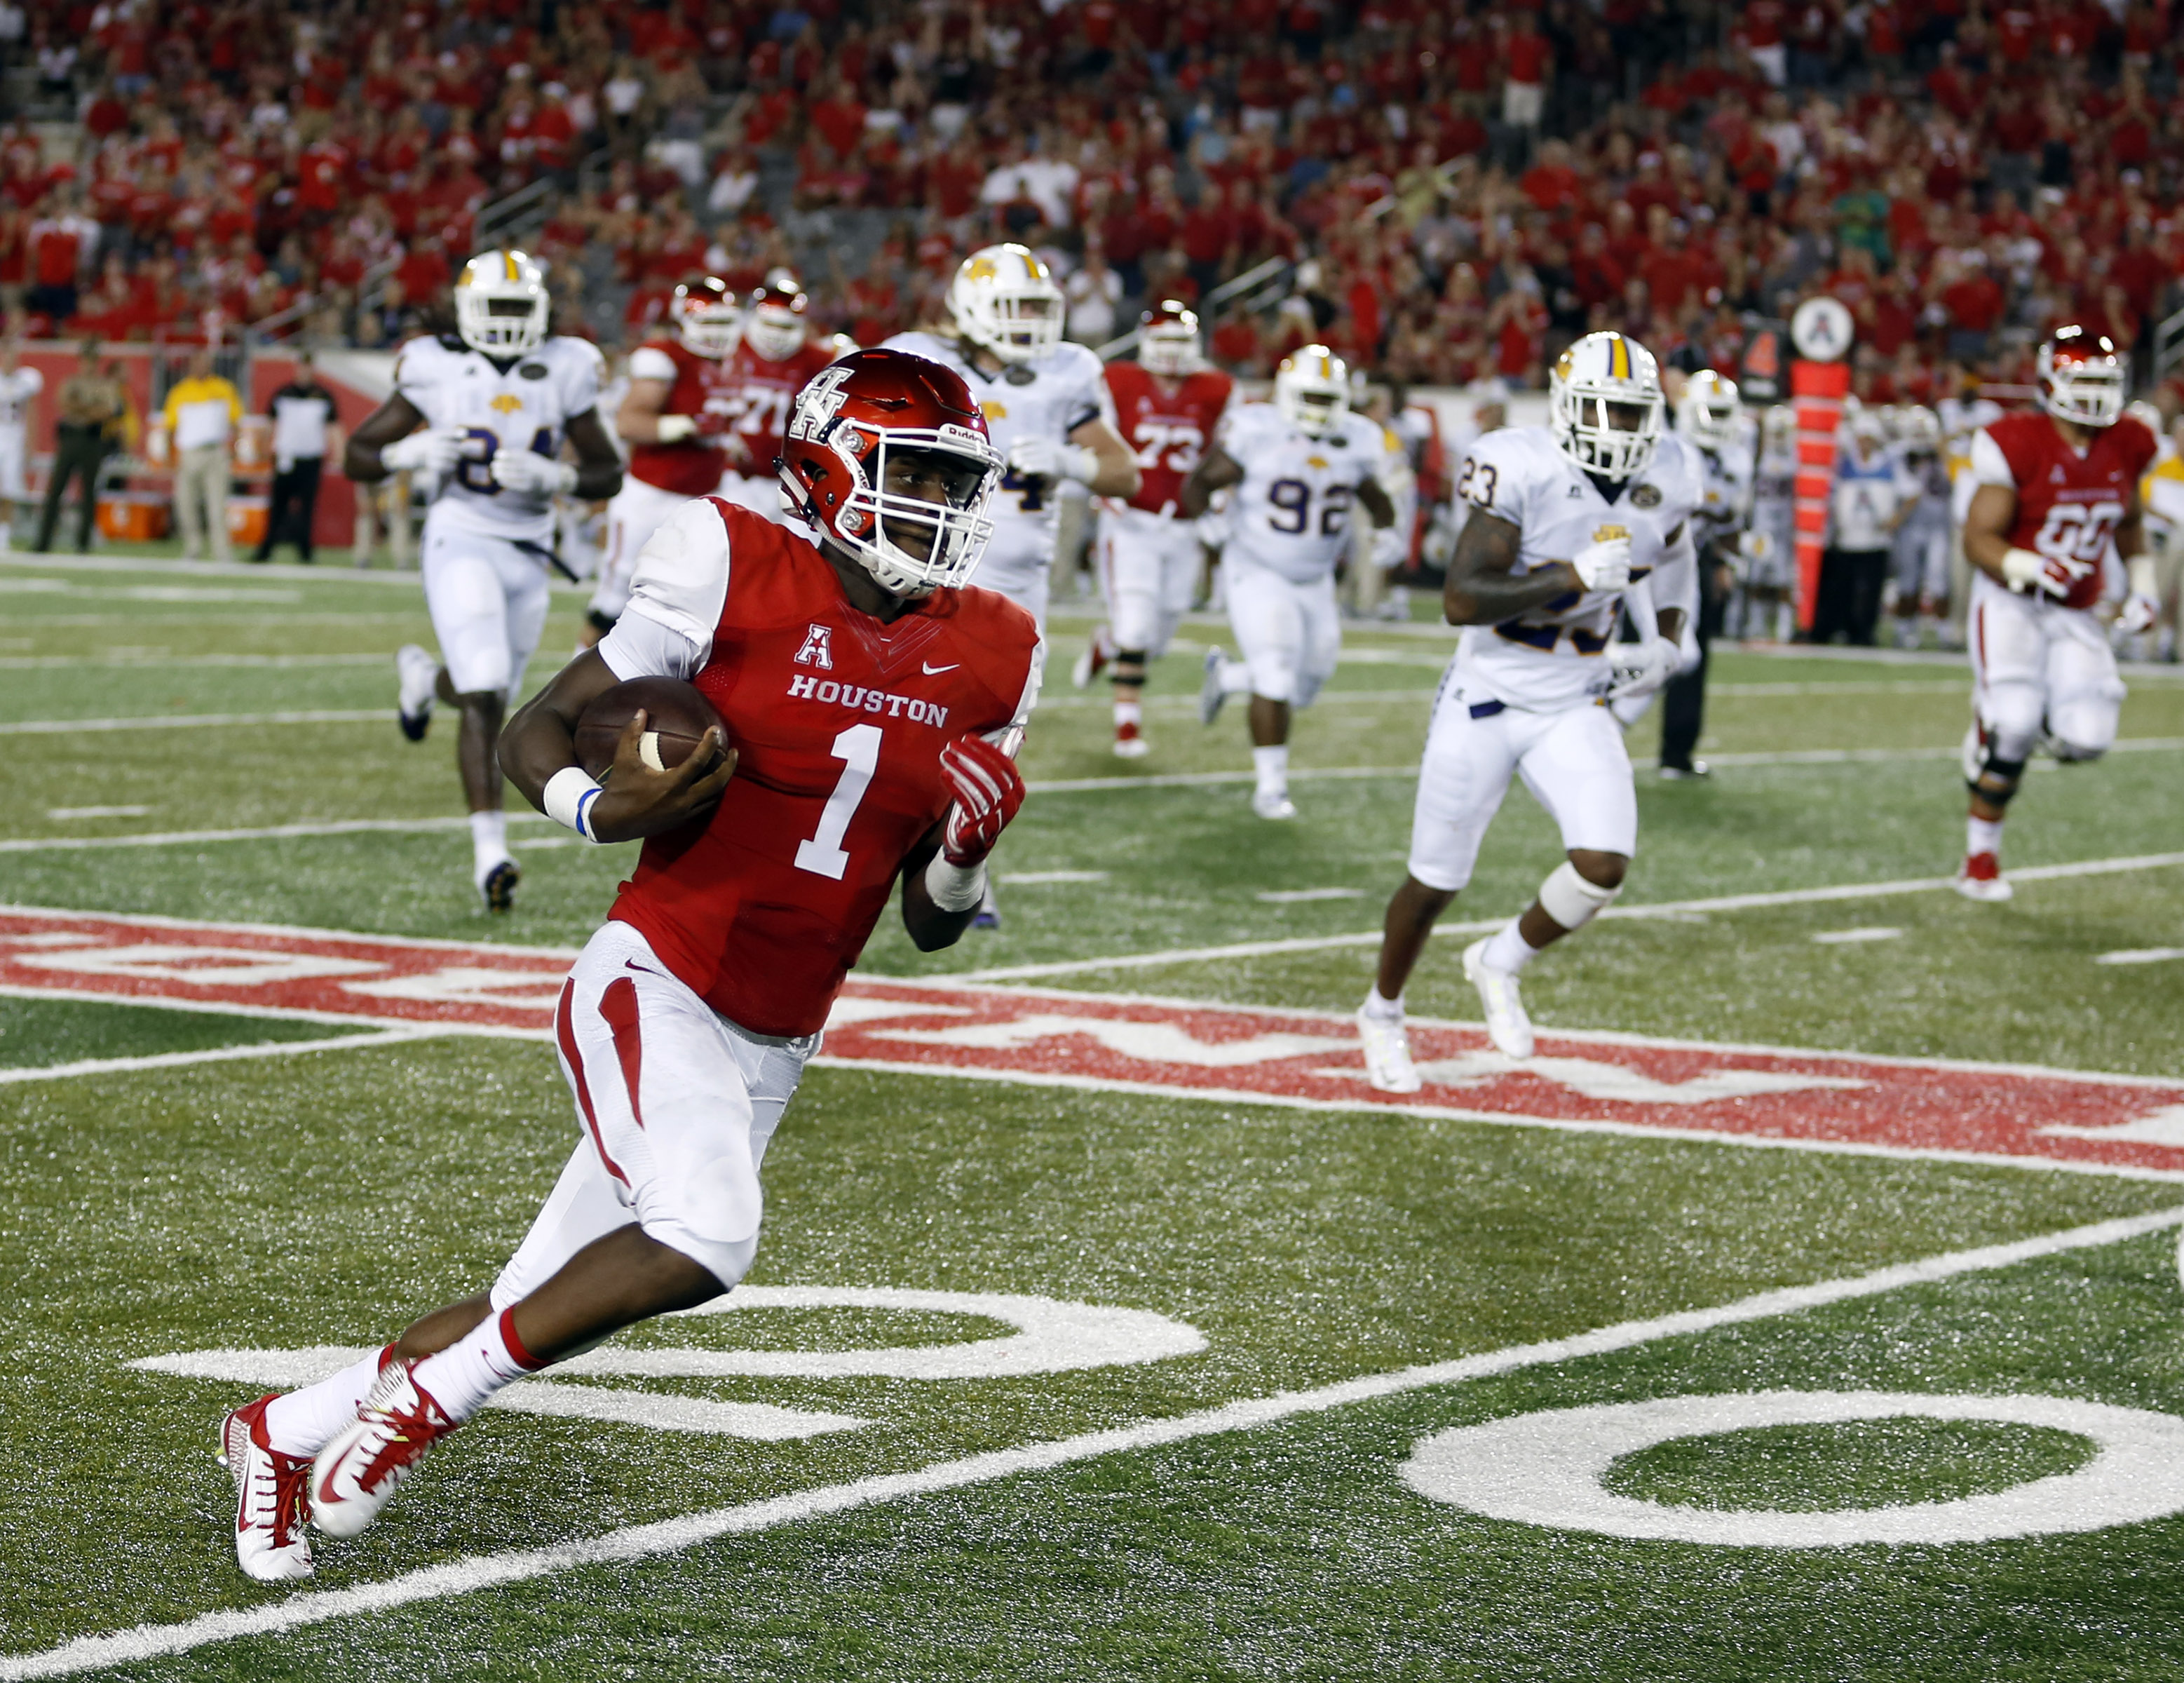 Houston's Greg Ward Jr. heads for a touchdown against Tennessee Tech during an NCAA college football game Saturday, Sept. 5, 2015, in Houston. (Craig Hartley/Houston Chronicle via AP)